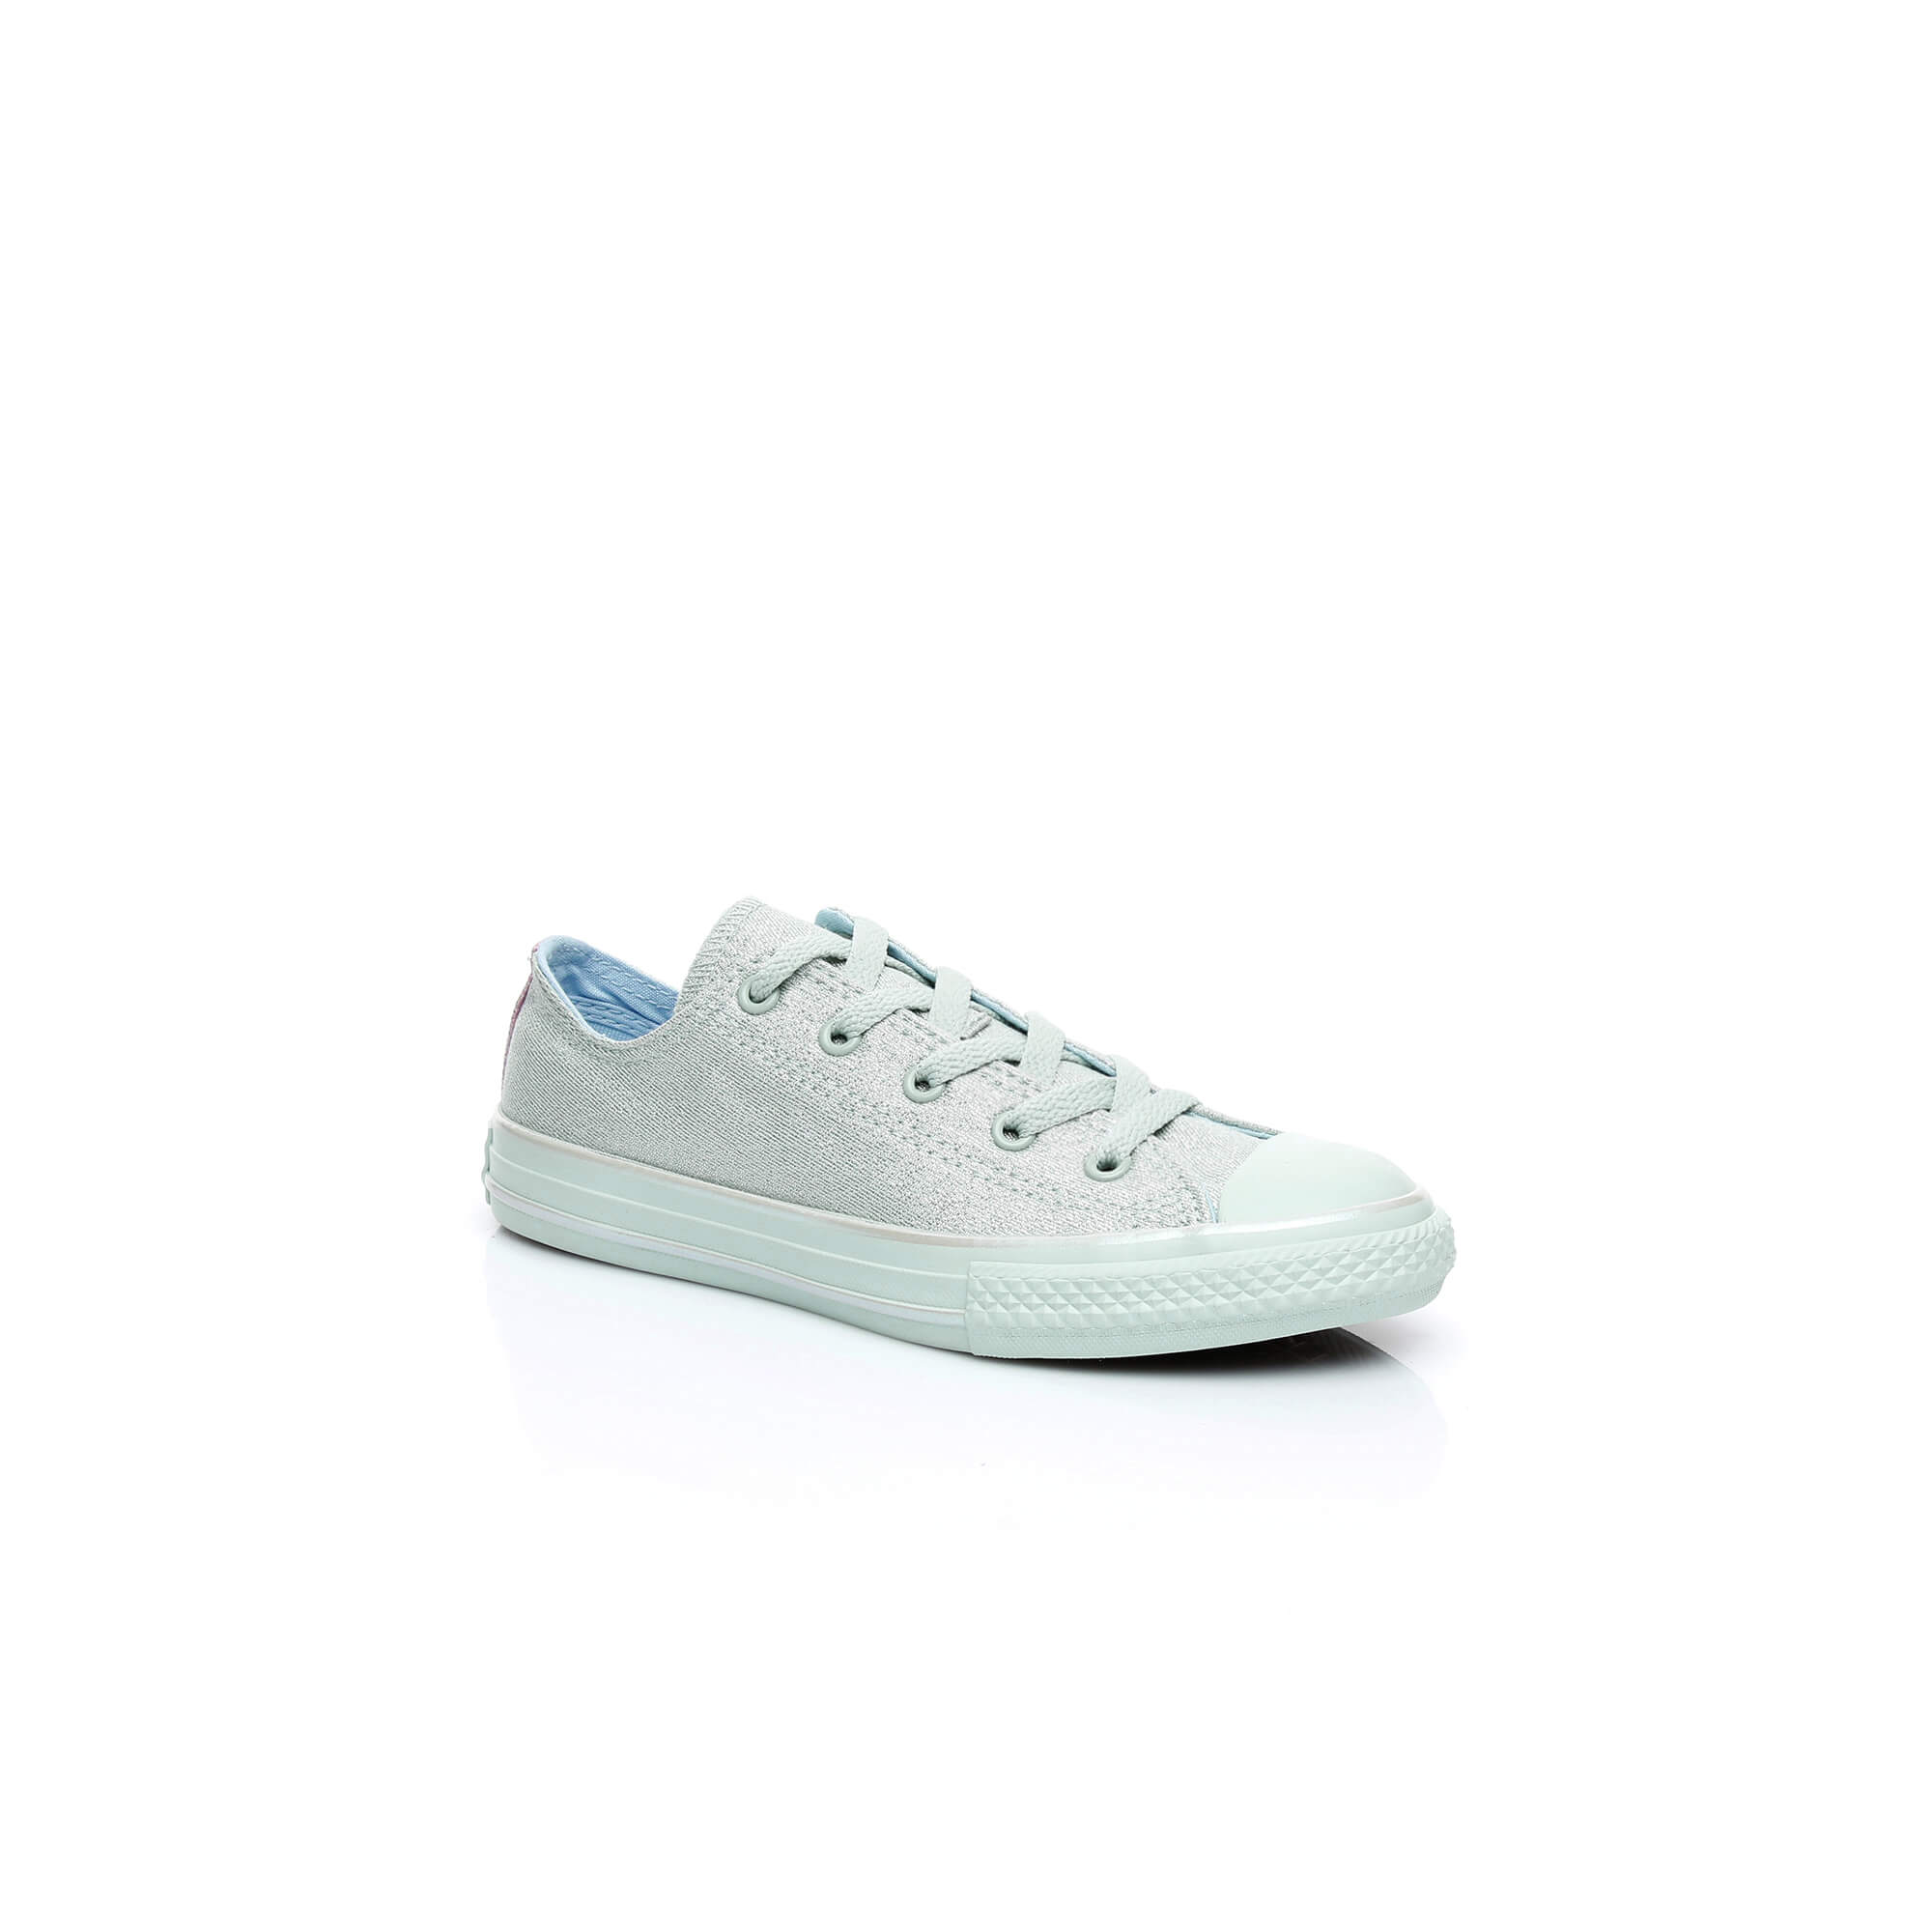 Converse Chuck Taylor All Star Double Tongue Çocuk Yeşil Sneaker